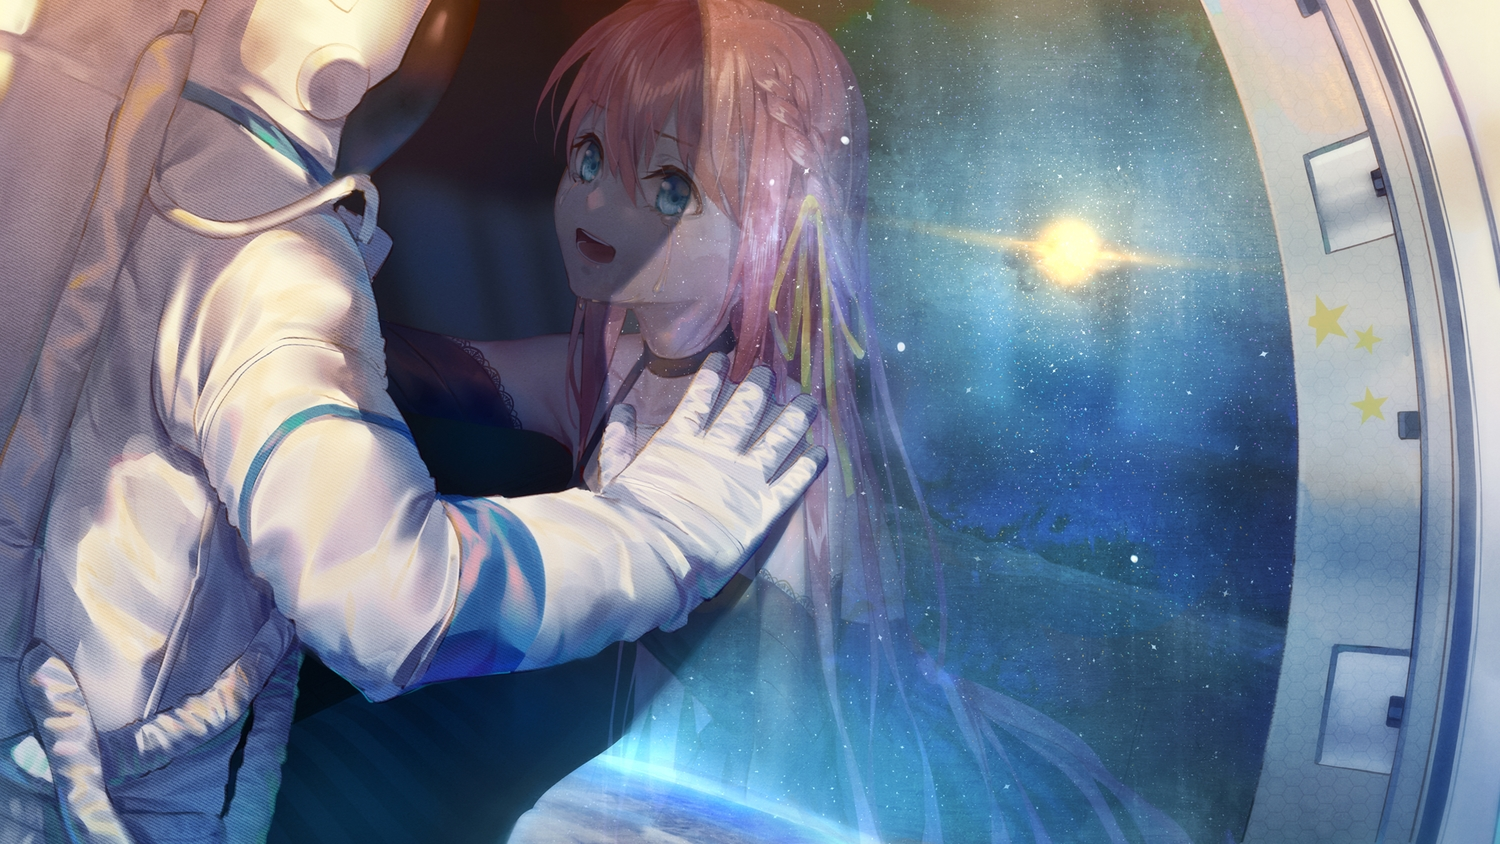 blue_eyes bodysuit braids choker crying dress ji_dao_ji long_hair original pink_hair planet ribbons space stars tears